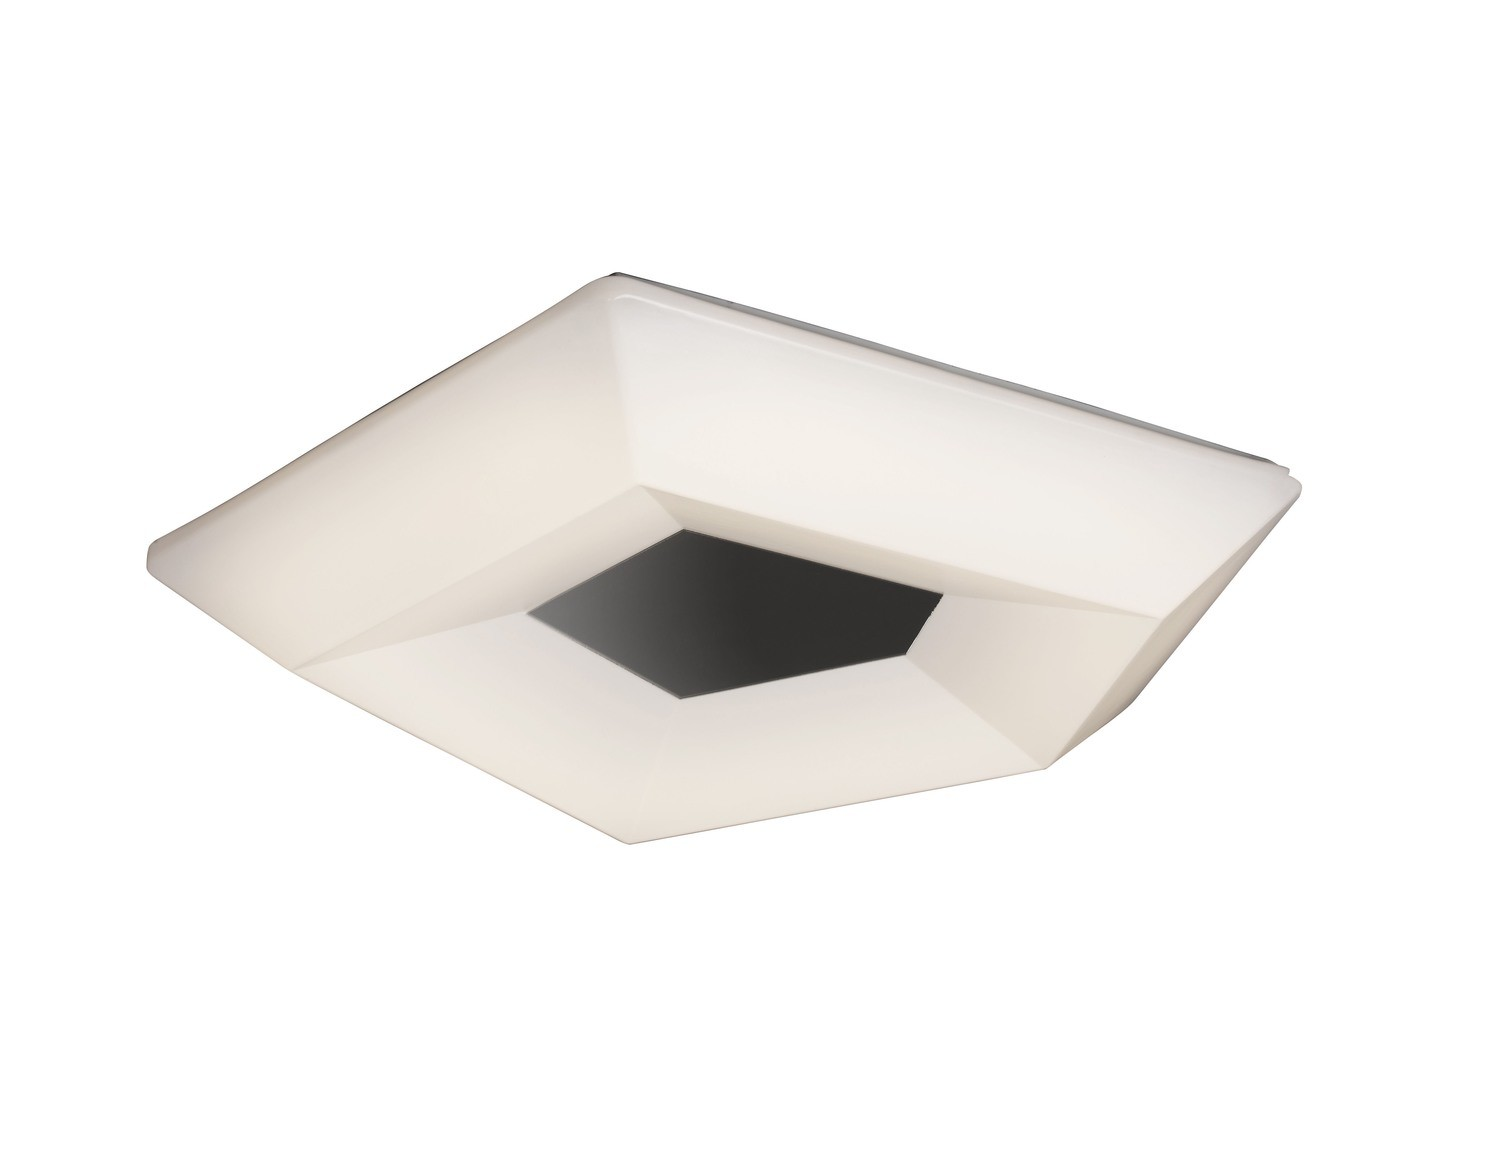 Mantra M3795 City Ceiling 28W LED Large 3000K, 2800lm, Polished Chrome/White Acrylic, 3yrs Warranty